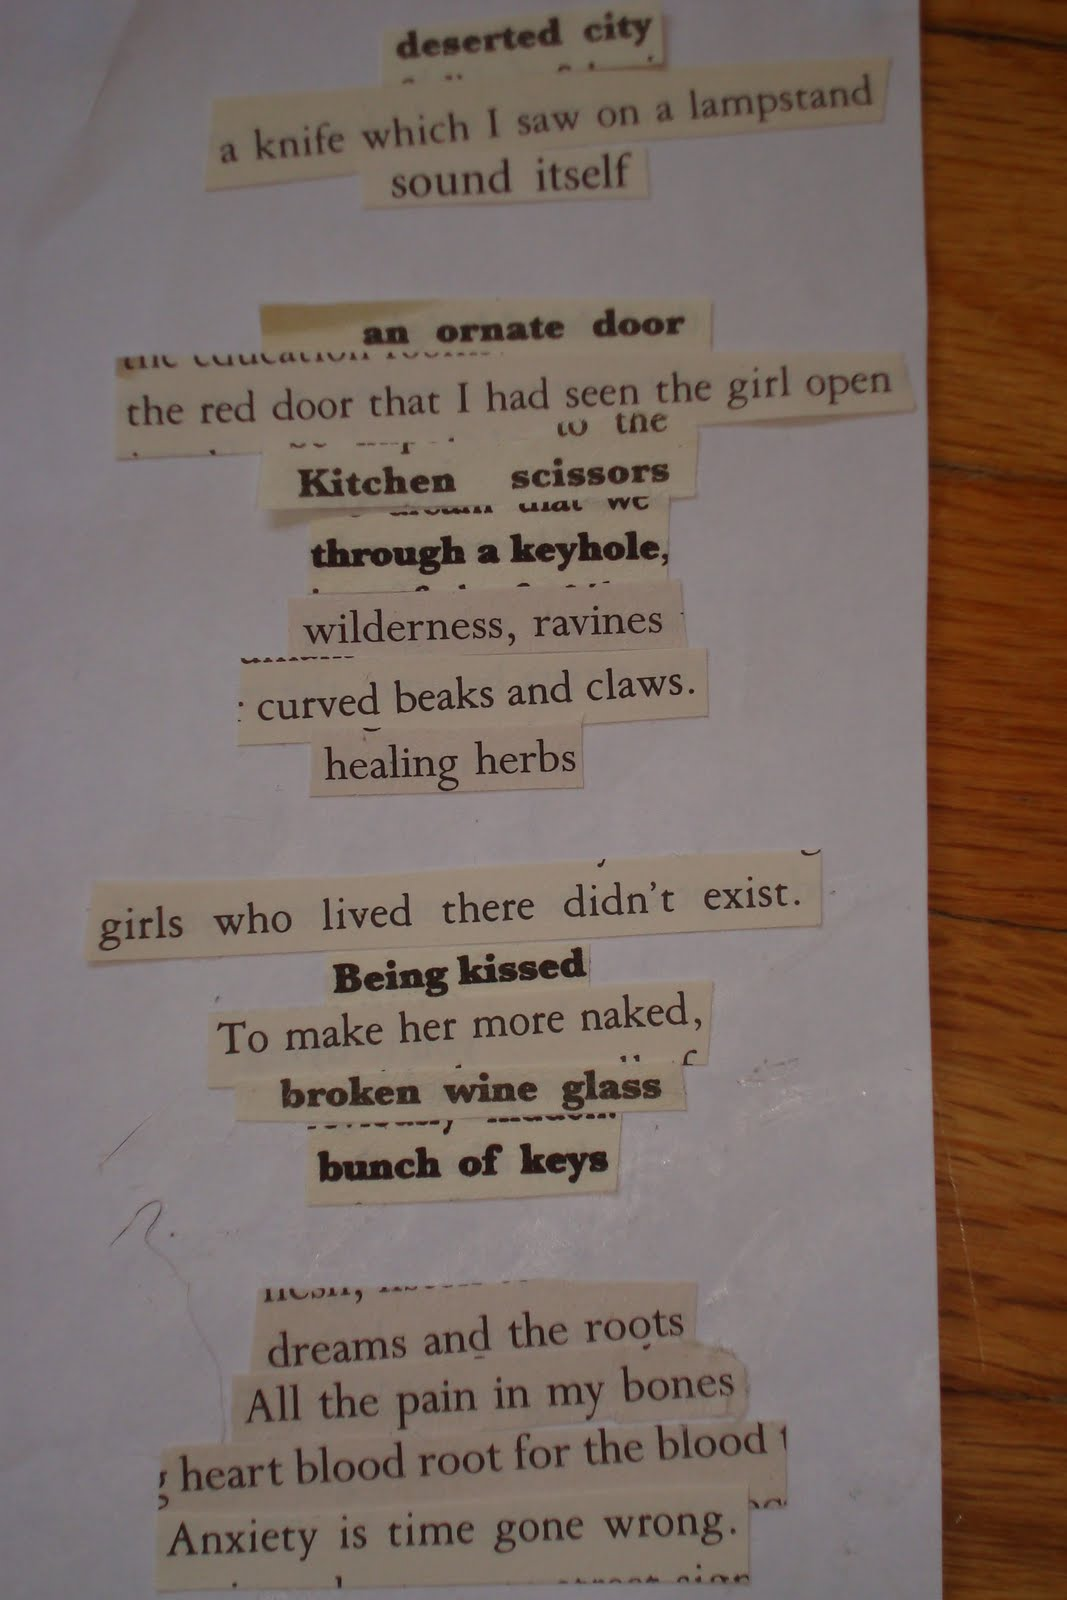 Pin Cutting-wrists-poems-image-search-results on Pinterest